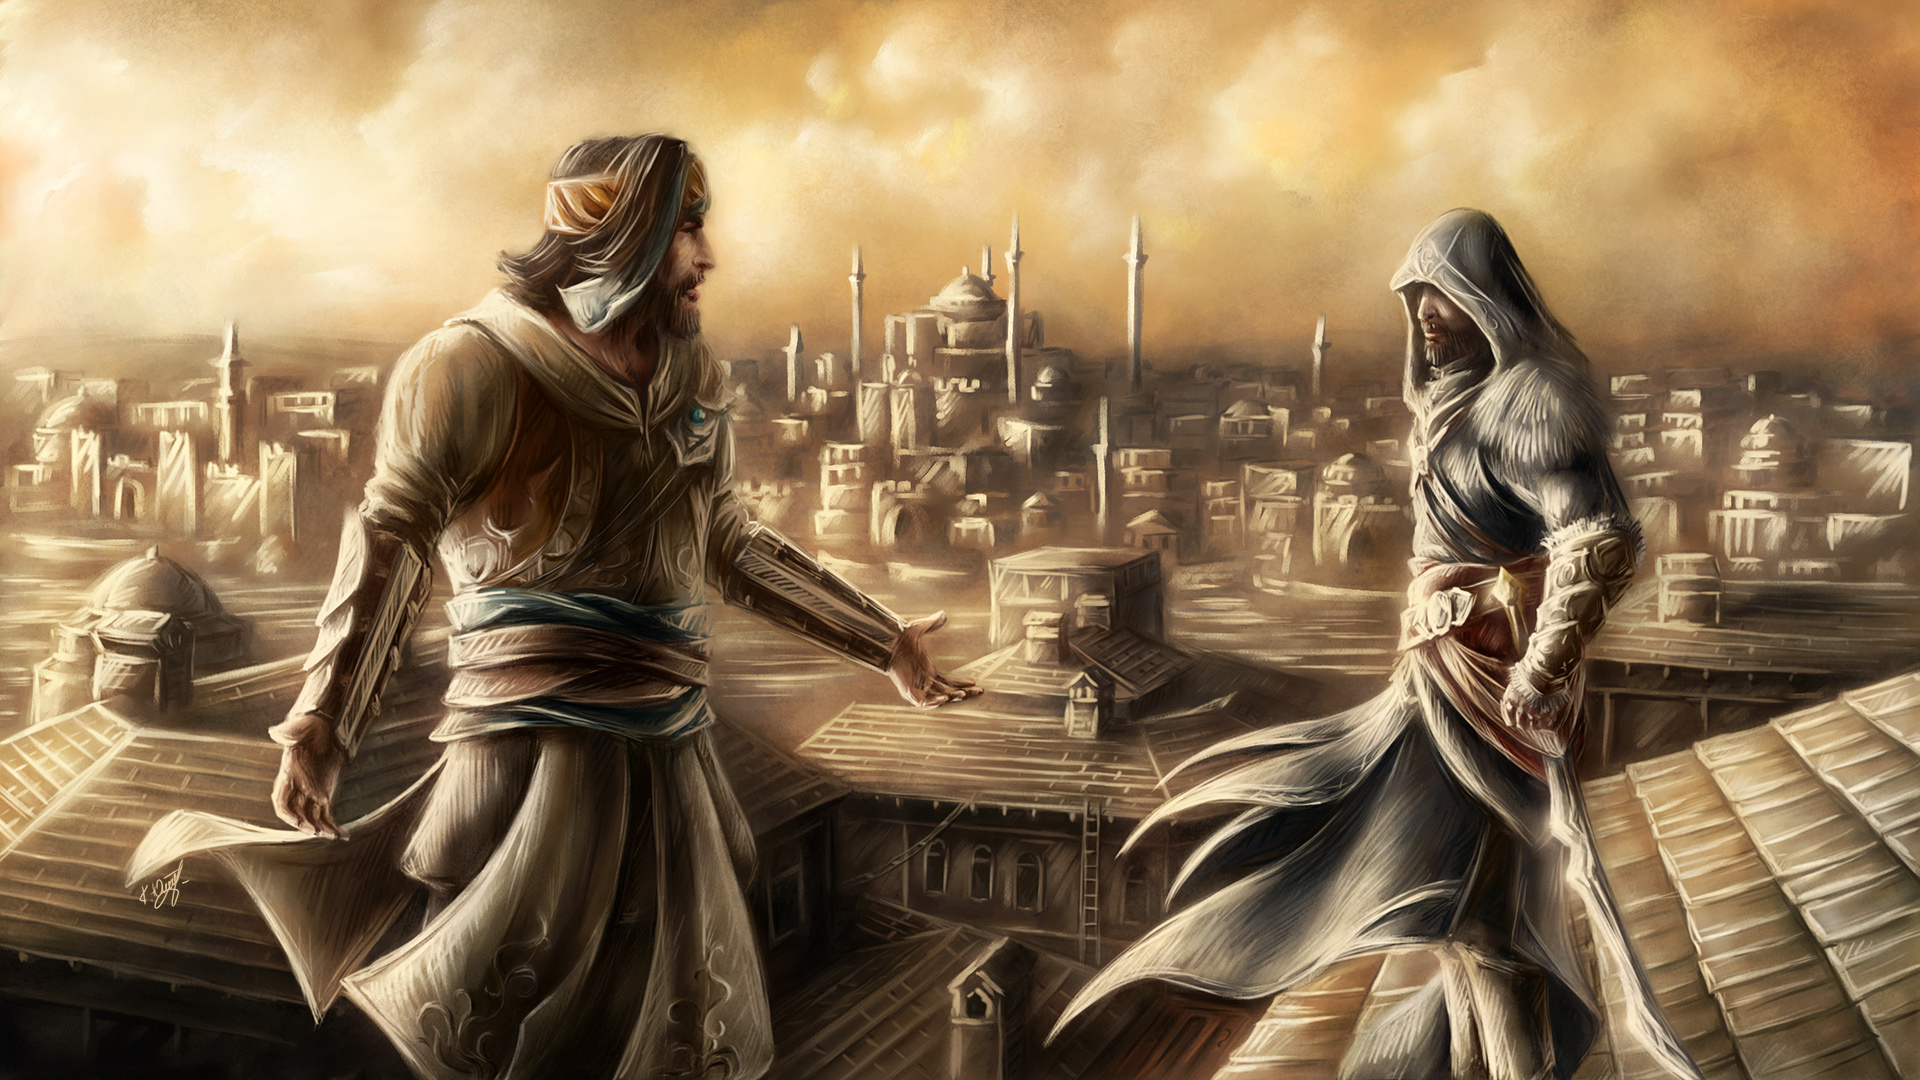 Assassins Creed Painting Art Games Wallpaper 1920x1080 100474